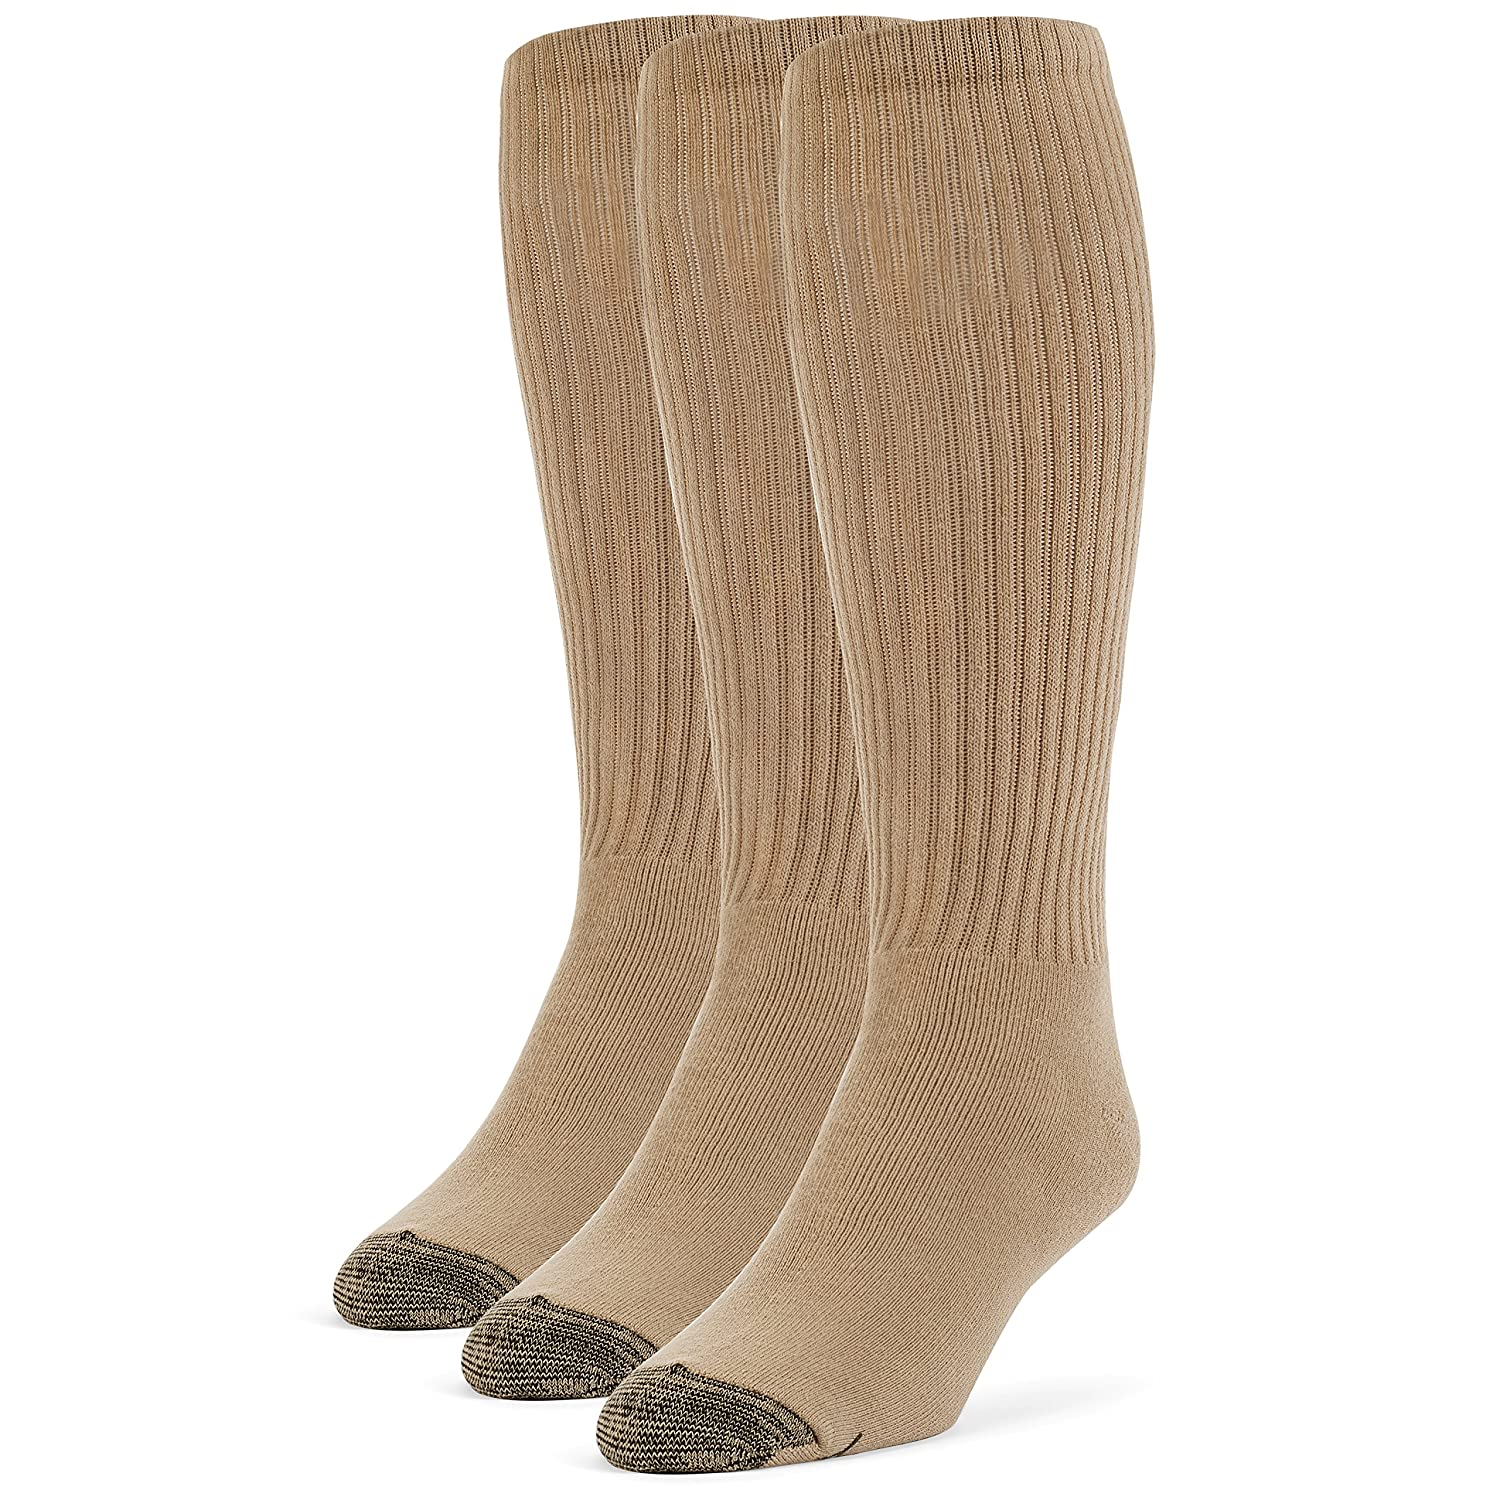 Galiva Mens Cotton Extra Soft Over the Calf Cushion Socks 3 Pairs Small Grey GL022GR-S